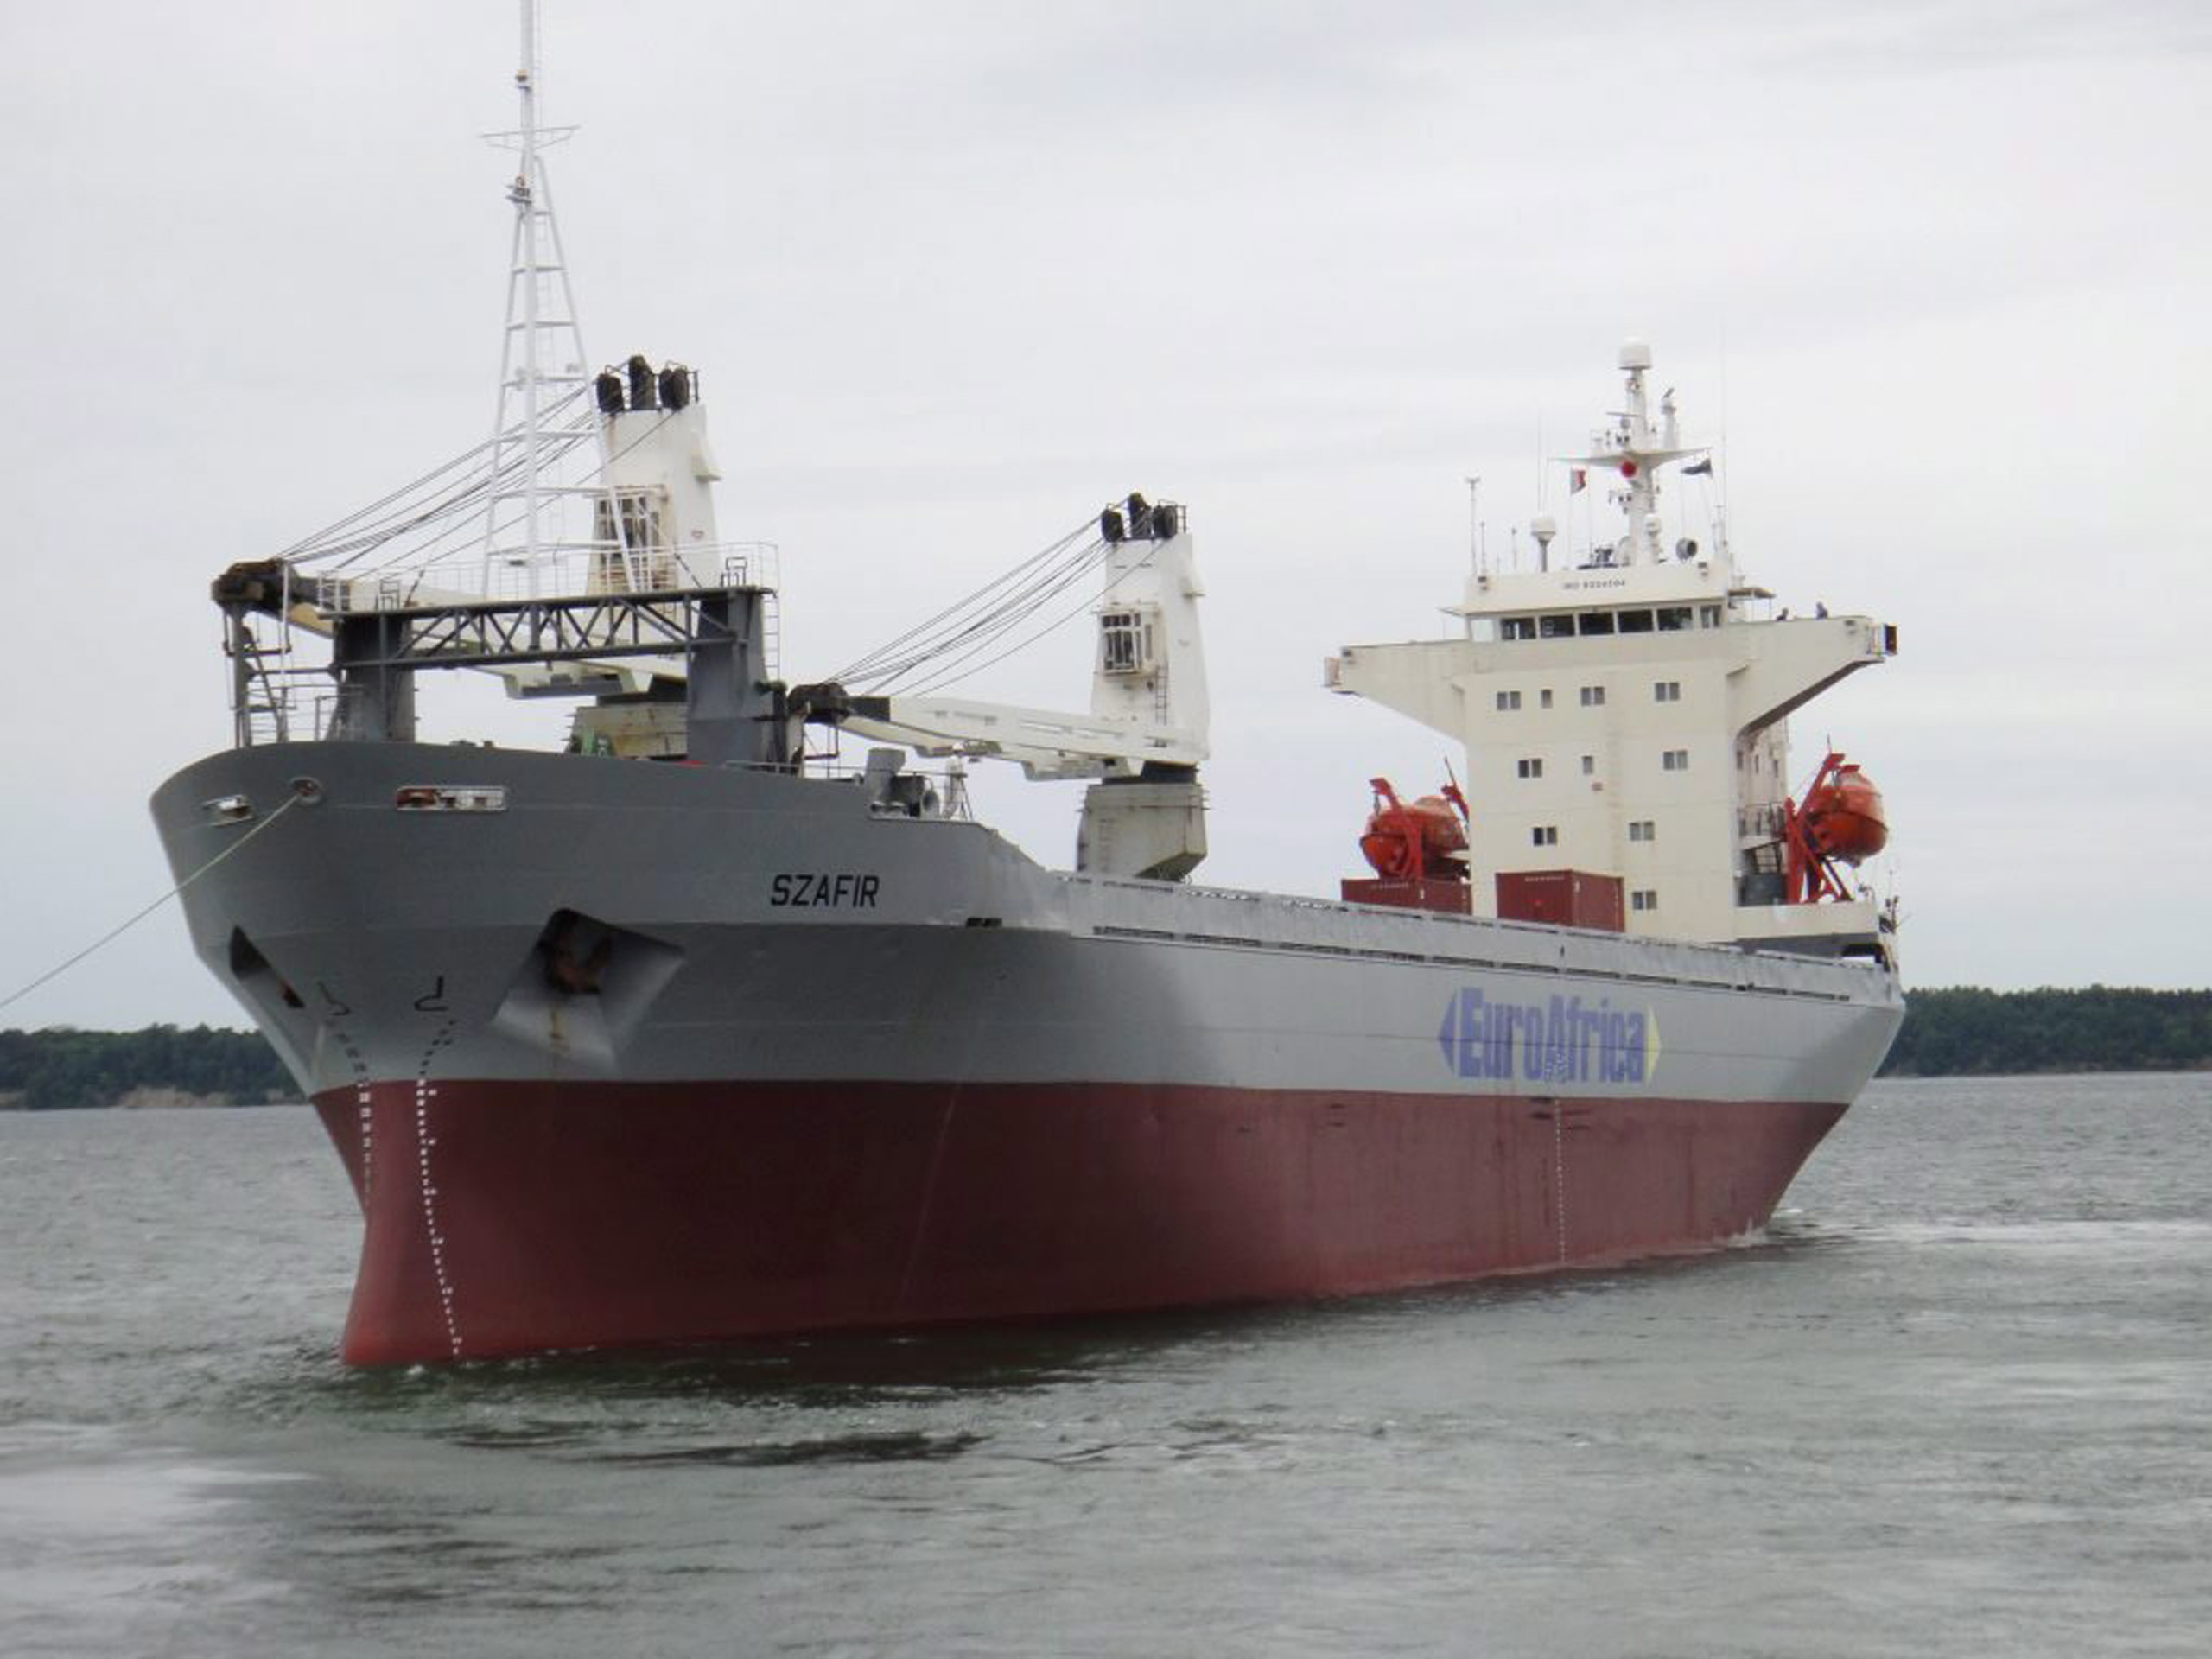 A handout picture shows Szafir (Sapphire) Cargo Ship of Euroafrica Sea Lines as it leaves the port of Tallin, Estonia, on June 30, 2012.